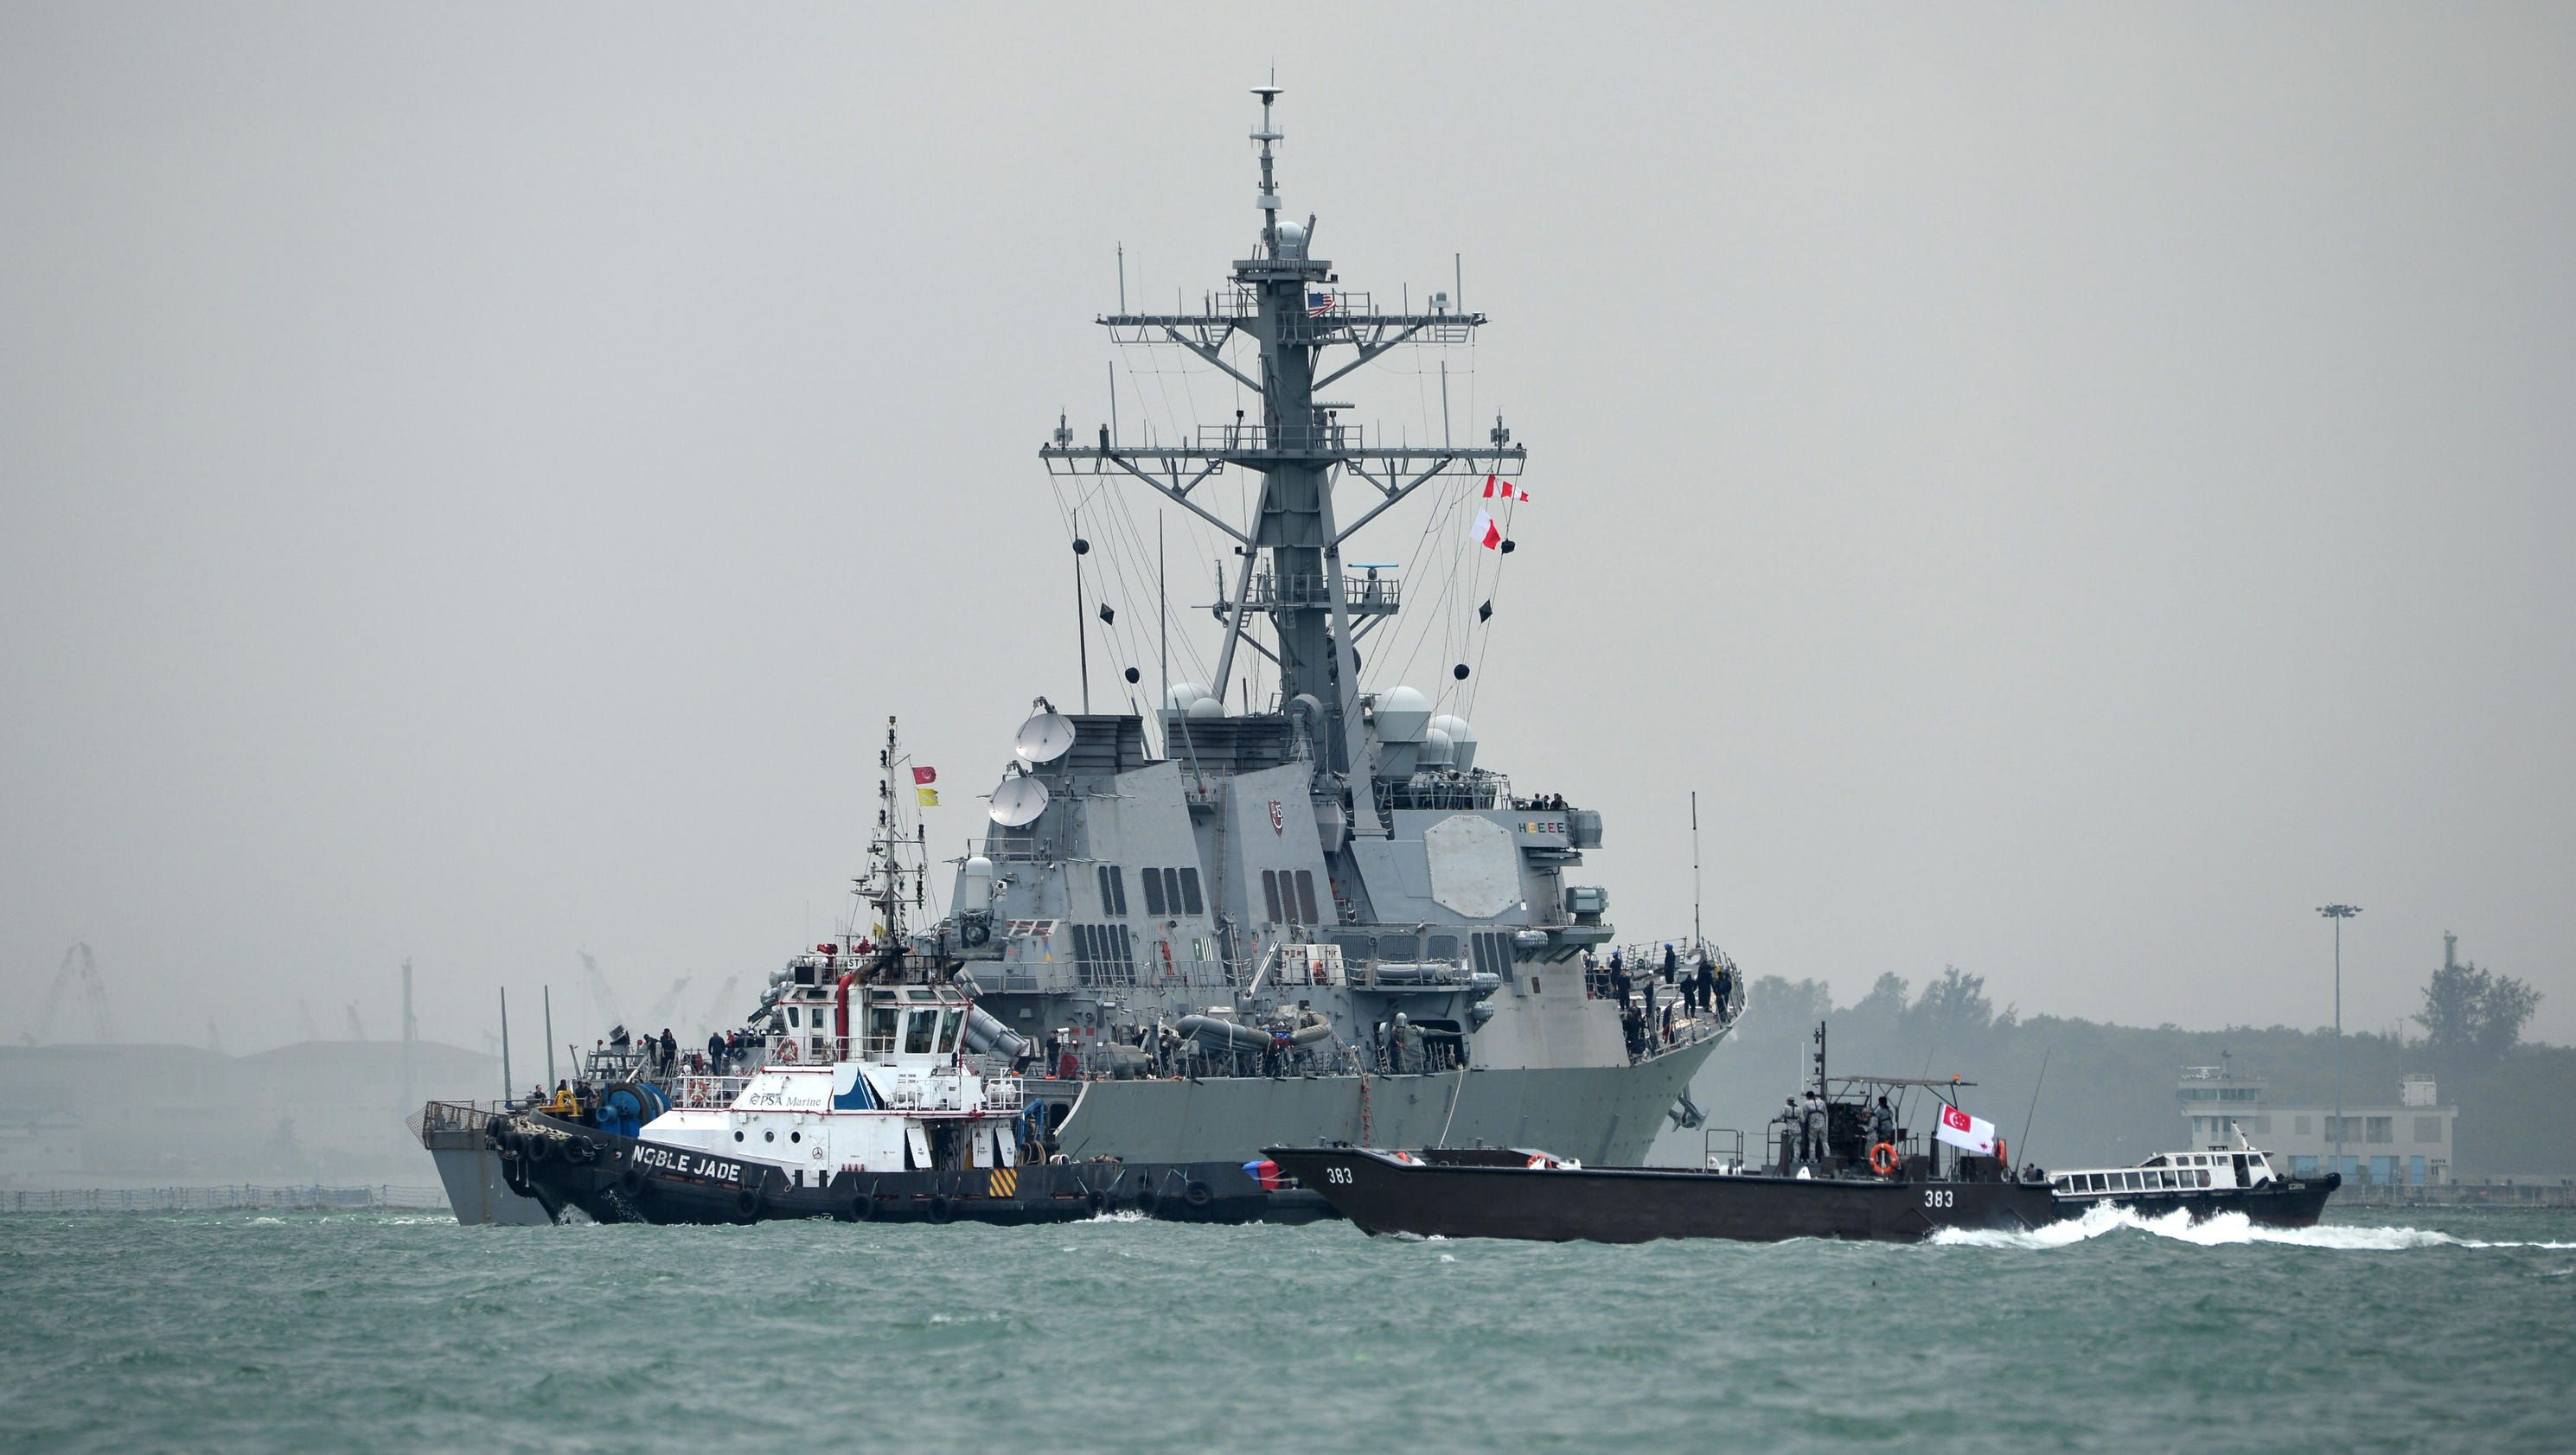 USS John S. McCain arrives at Singapore naval base after collision leaves 10 missing